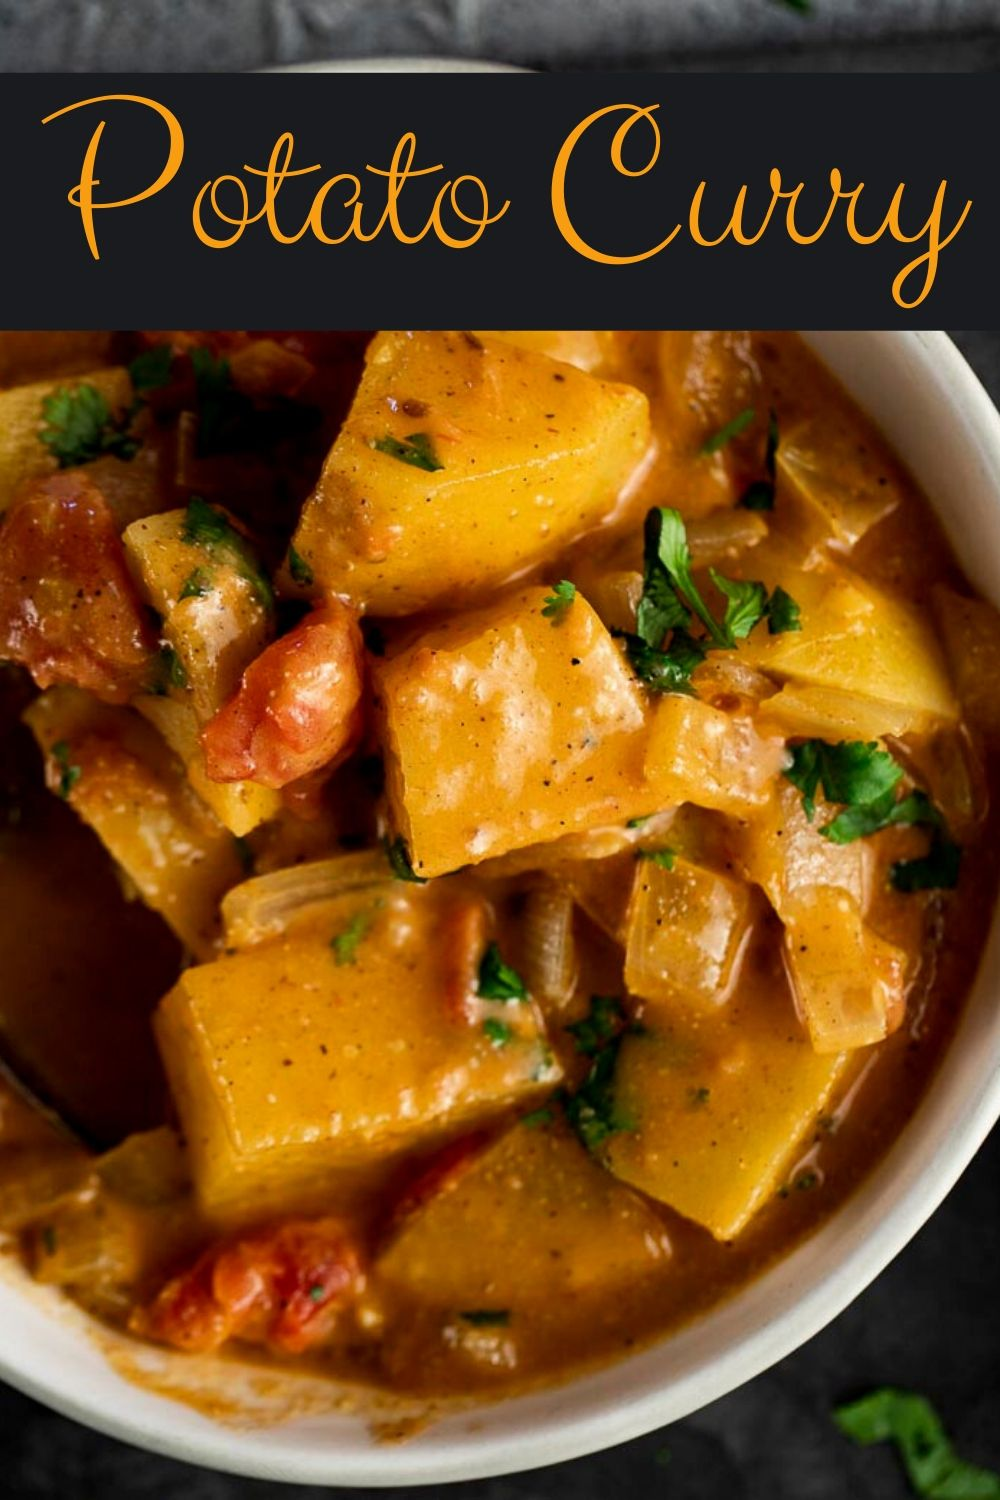 Spicy Potato Curry (Aloo Curry)